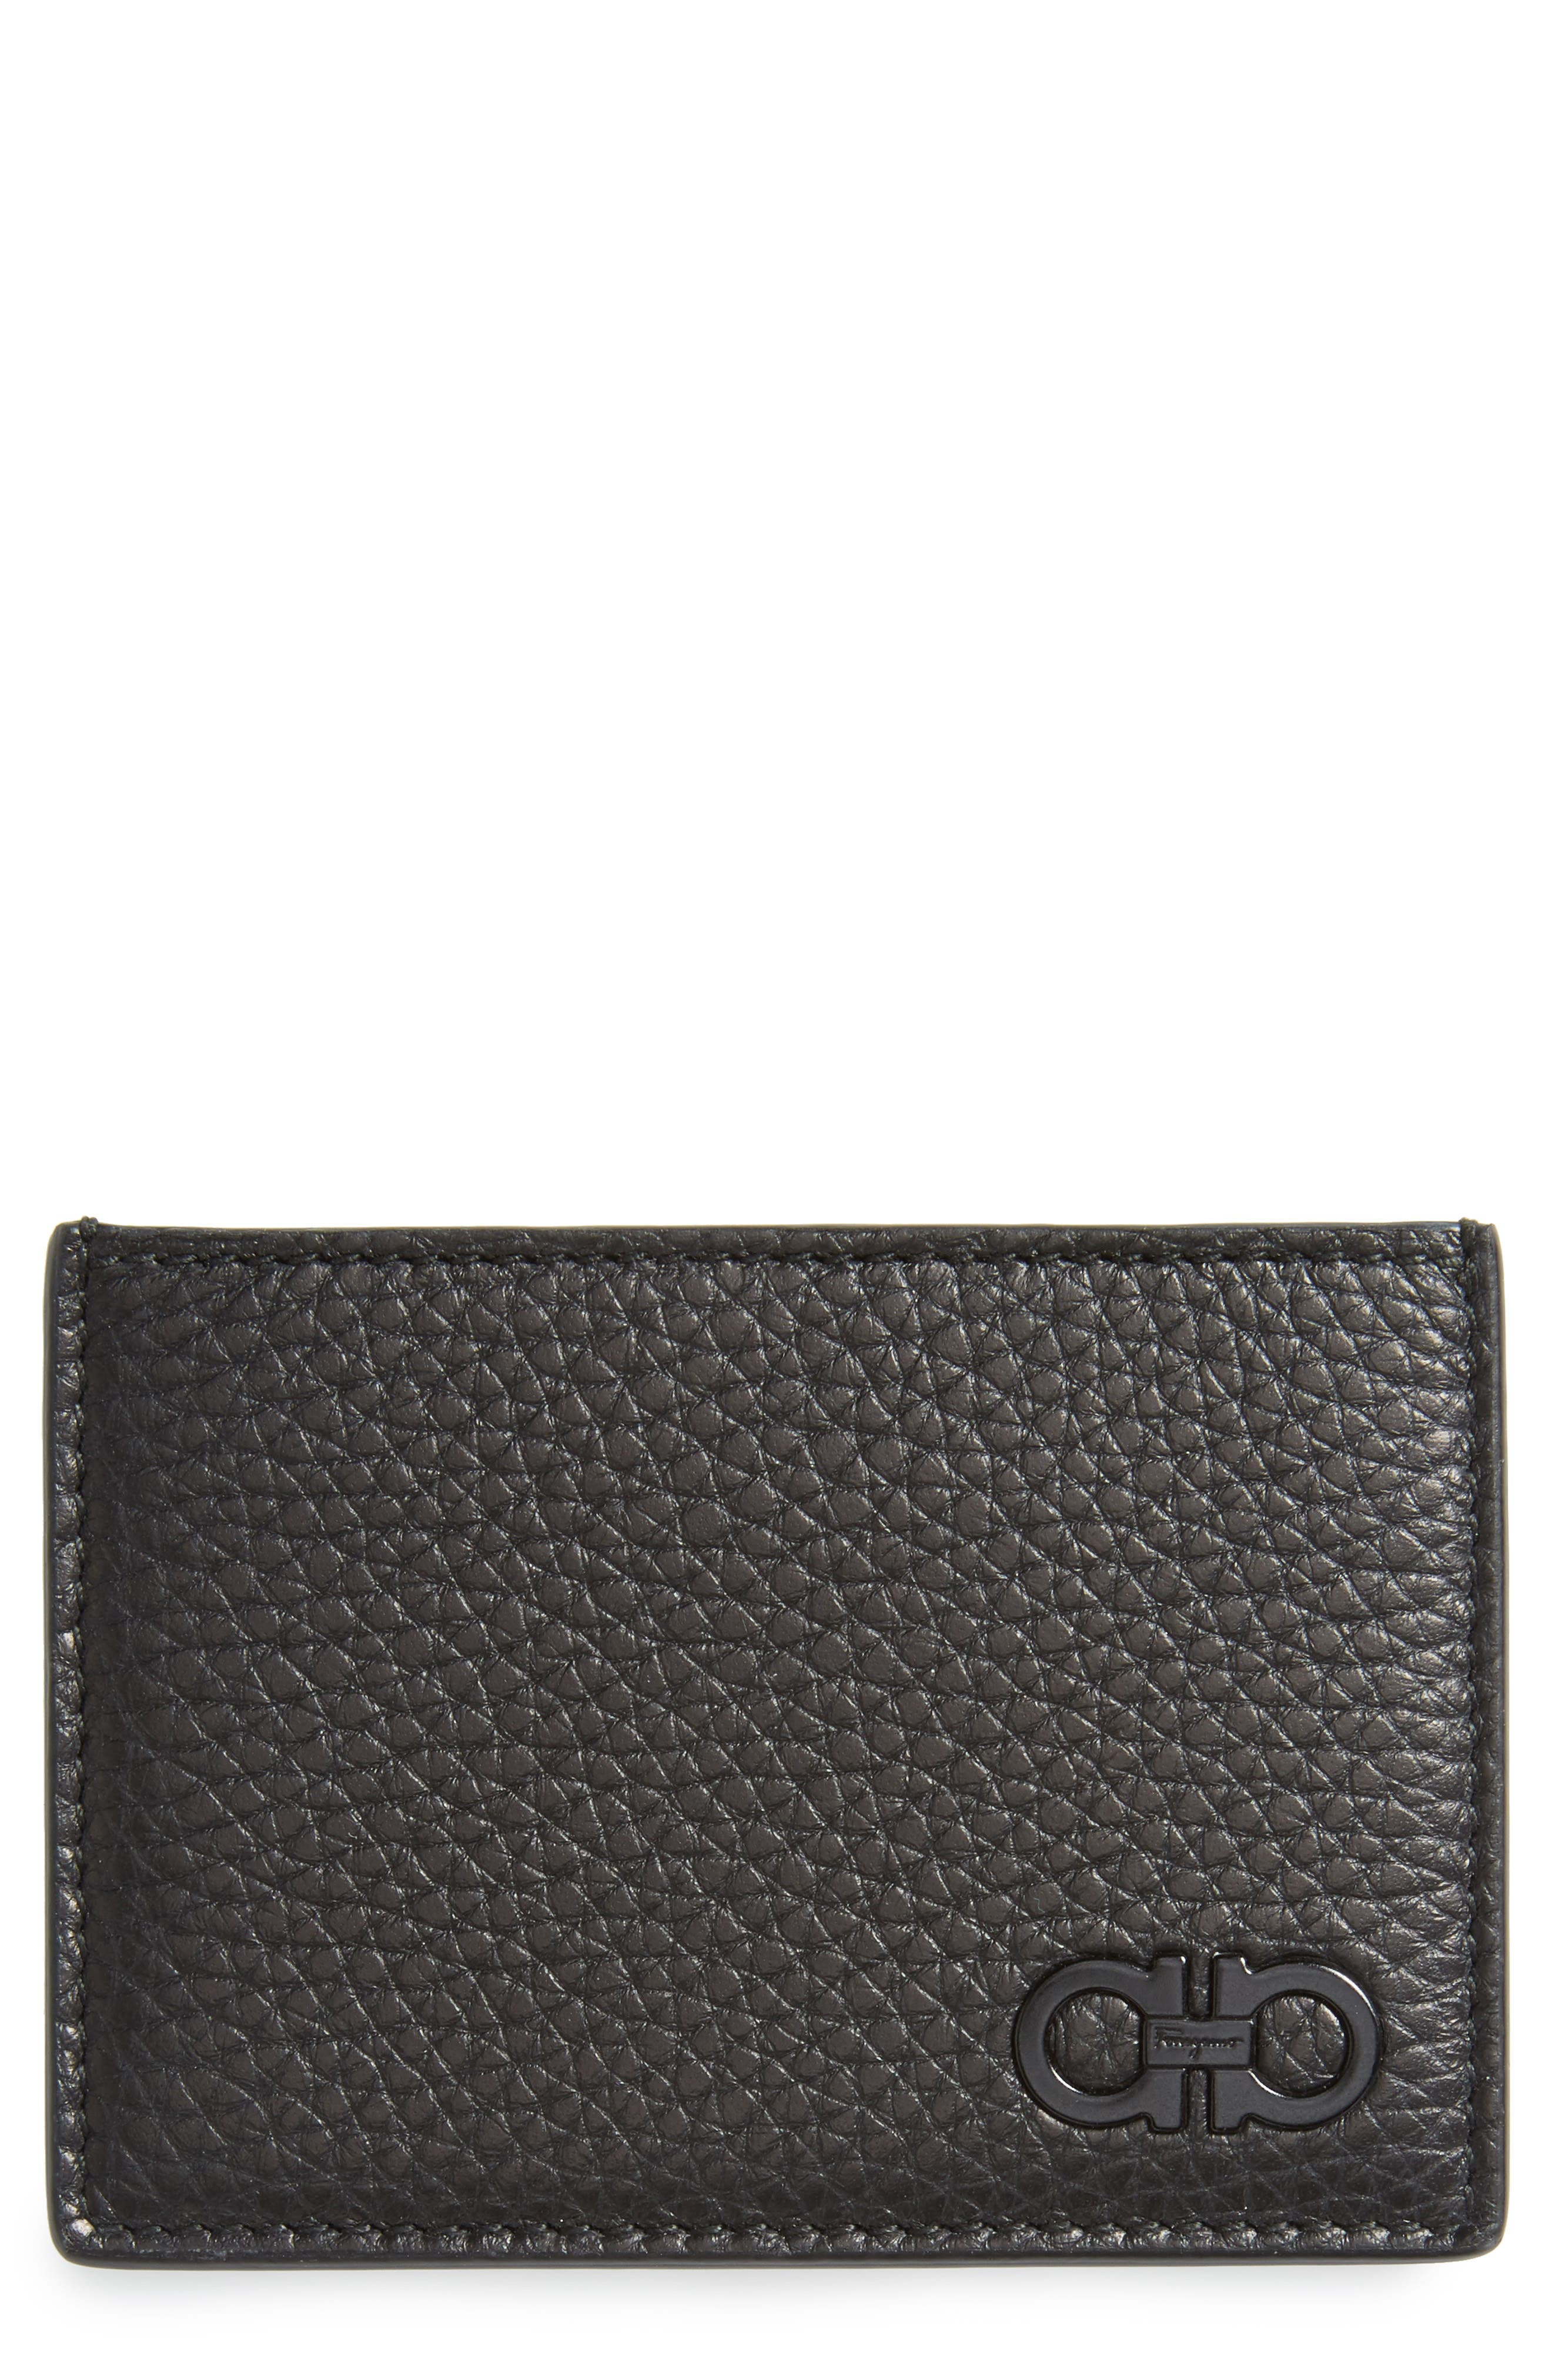 Calfskin Leather Card Case,                         Main,                         color, Black